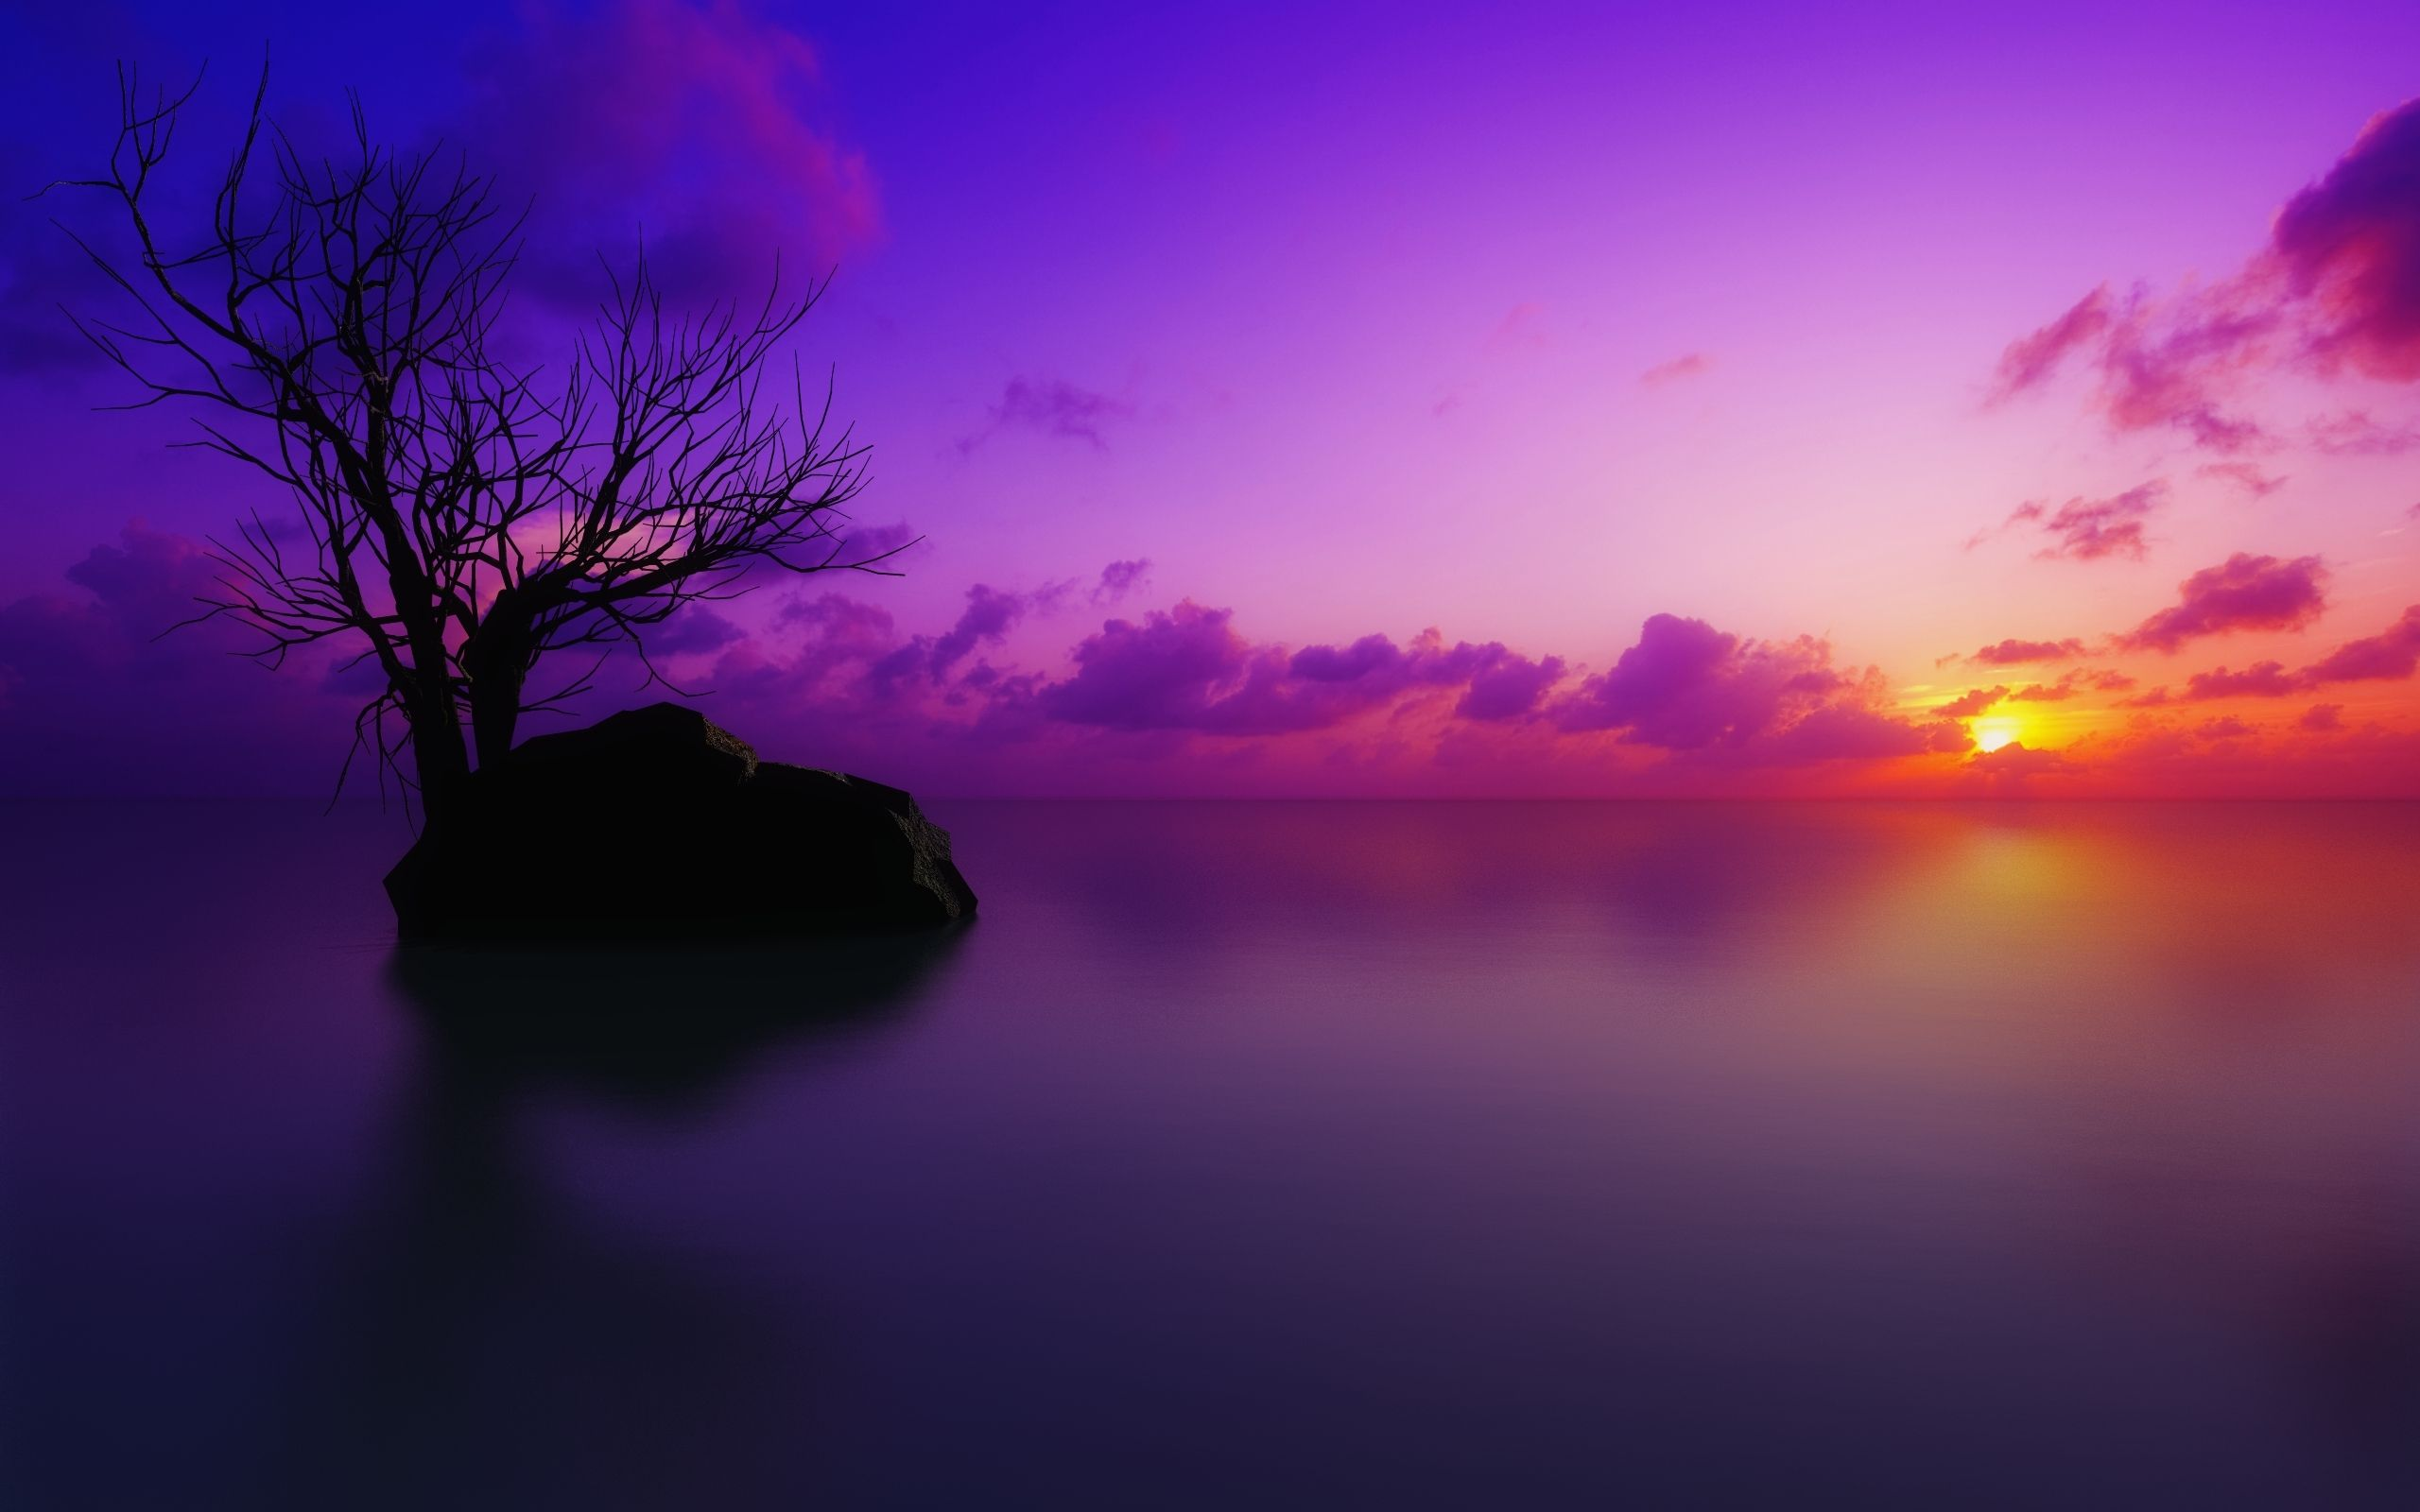 Wallpaper Dead Tree Picture Colorful Sunset Scenic Dead Trees The Sky Nature Wallpapers Sunset Images Purple Sunset Sunset Wallpaper